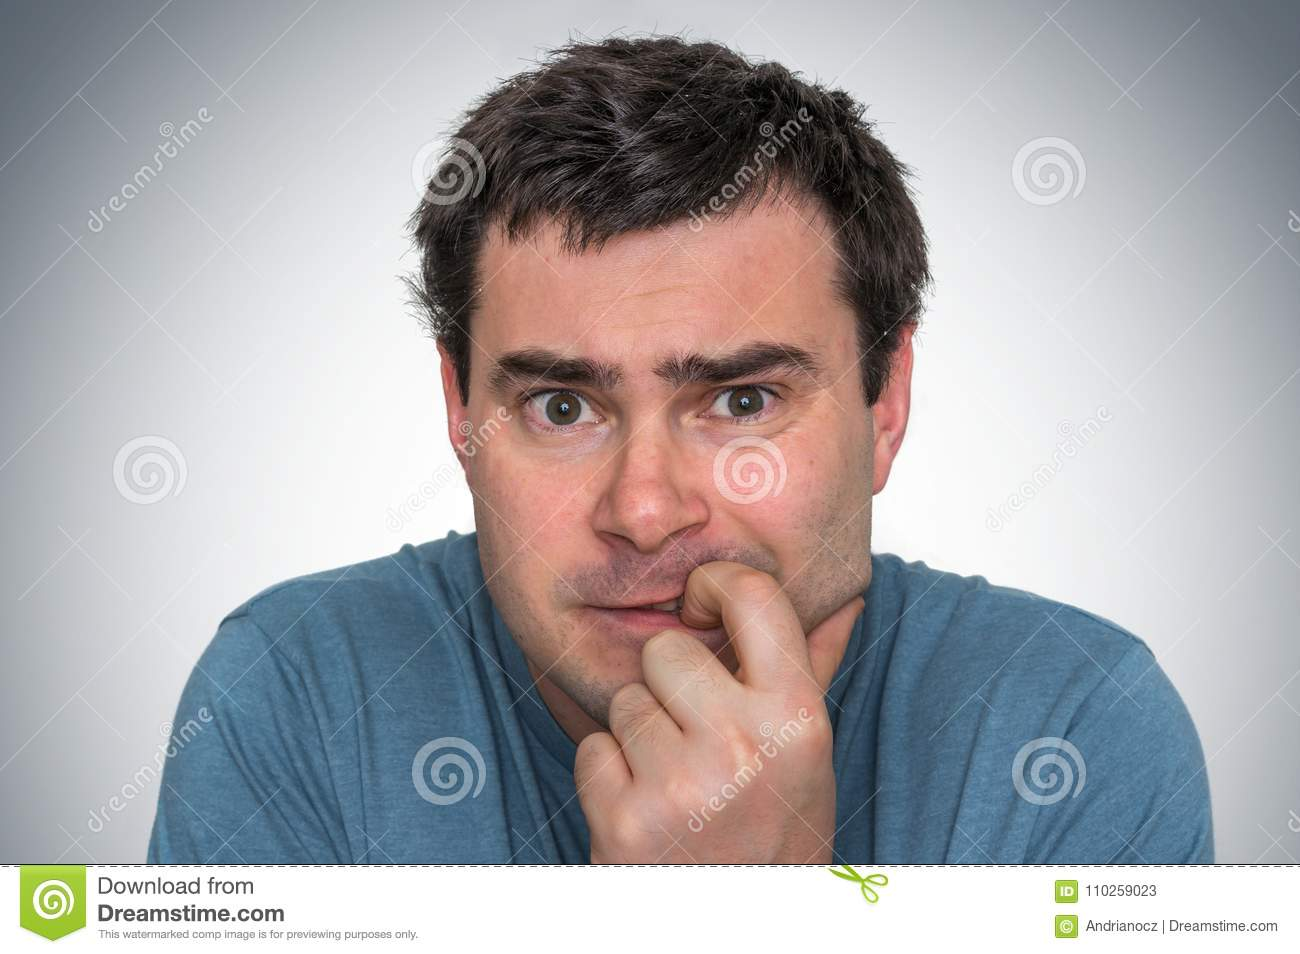 Nervous Man Biting His Nails - Nervous Breakdown Stock Image - Image ...